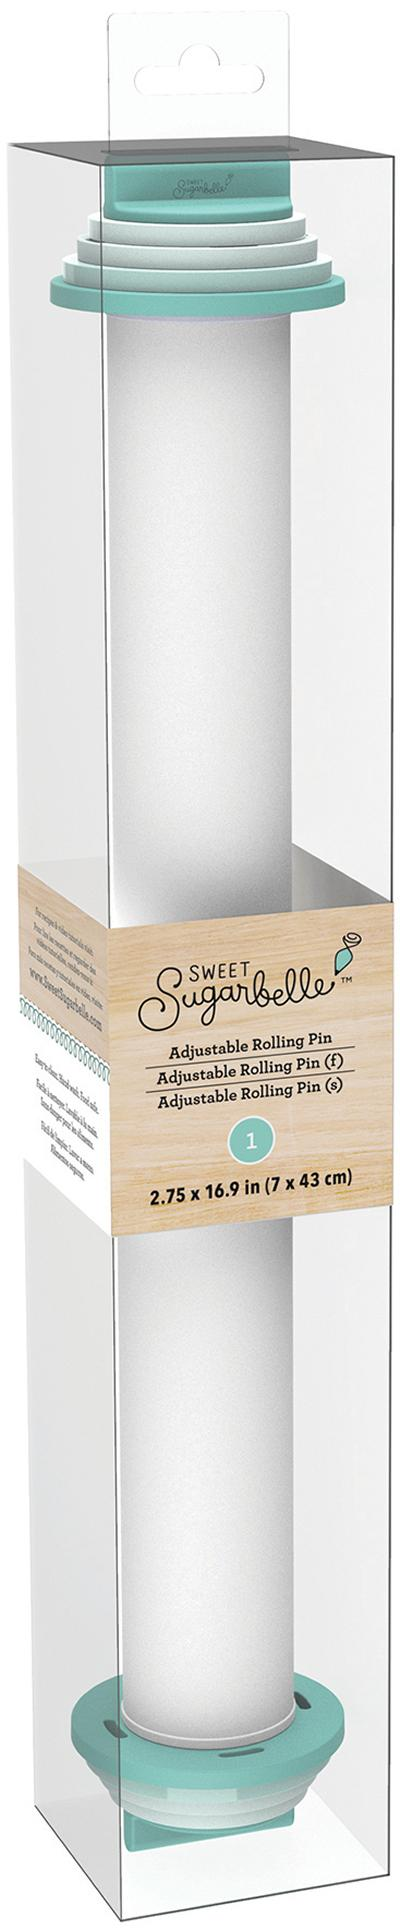 AMC Sugarbelle Adjustable Rolling Pin by American Crafts